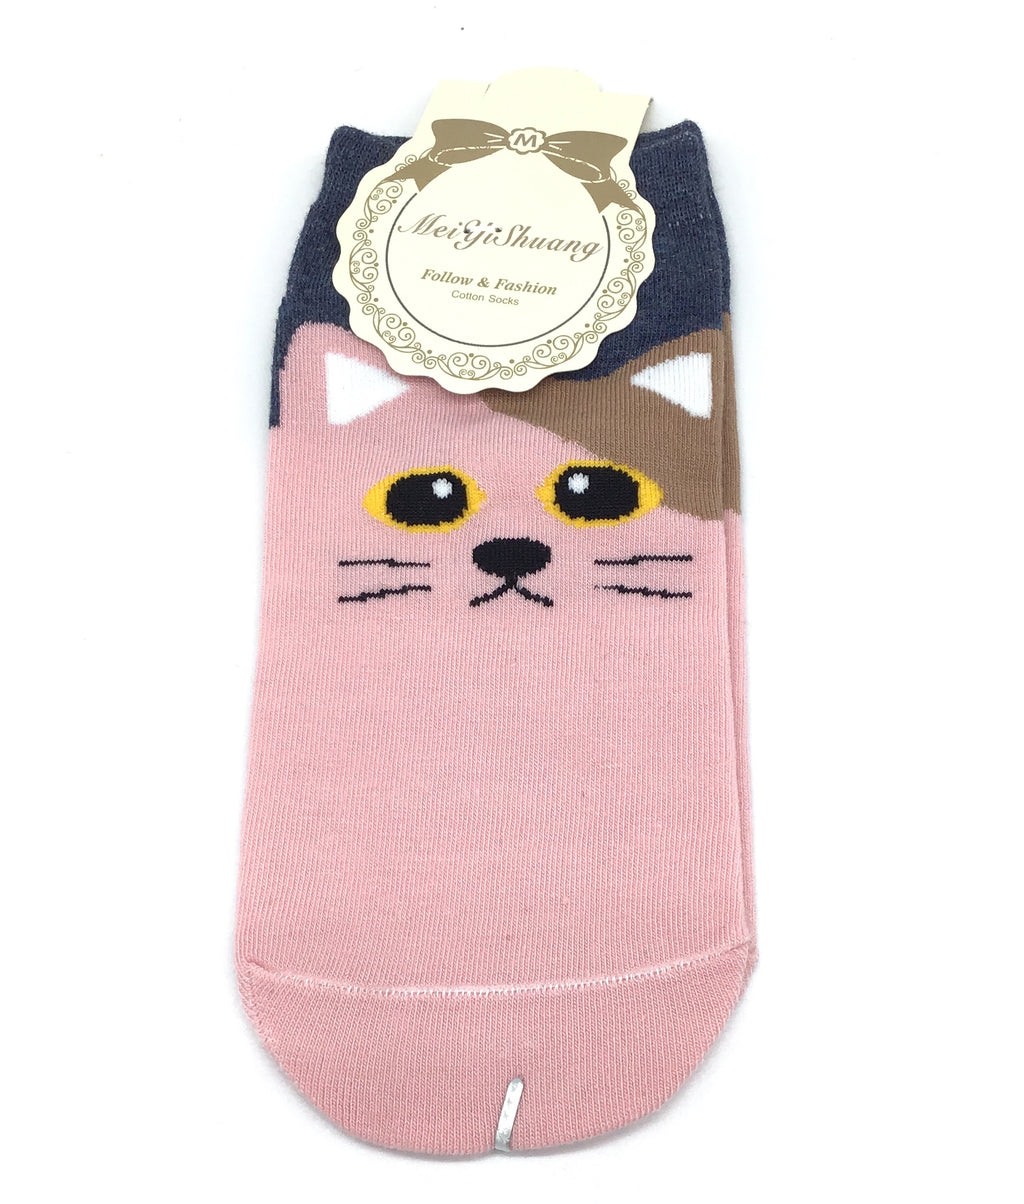 Cat & Dog Socks (Multiple Options)-Lola Monroe Boutique